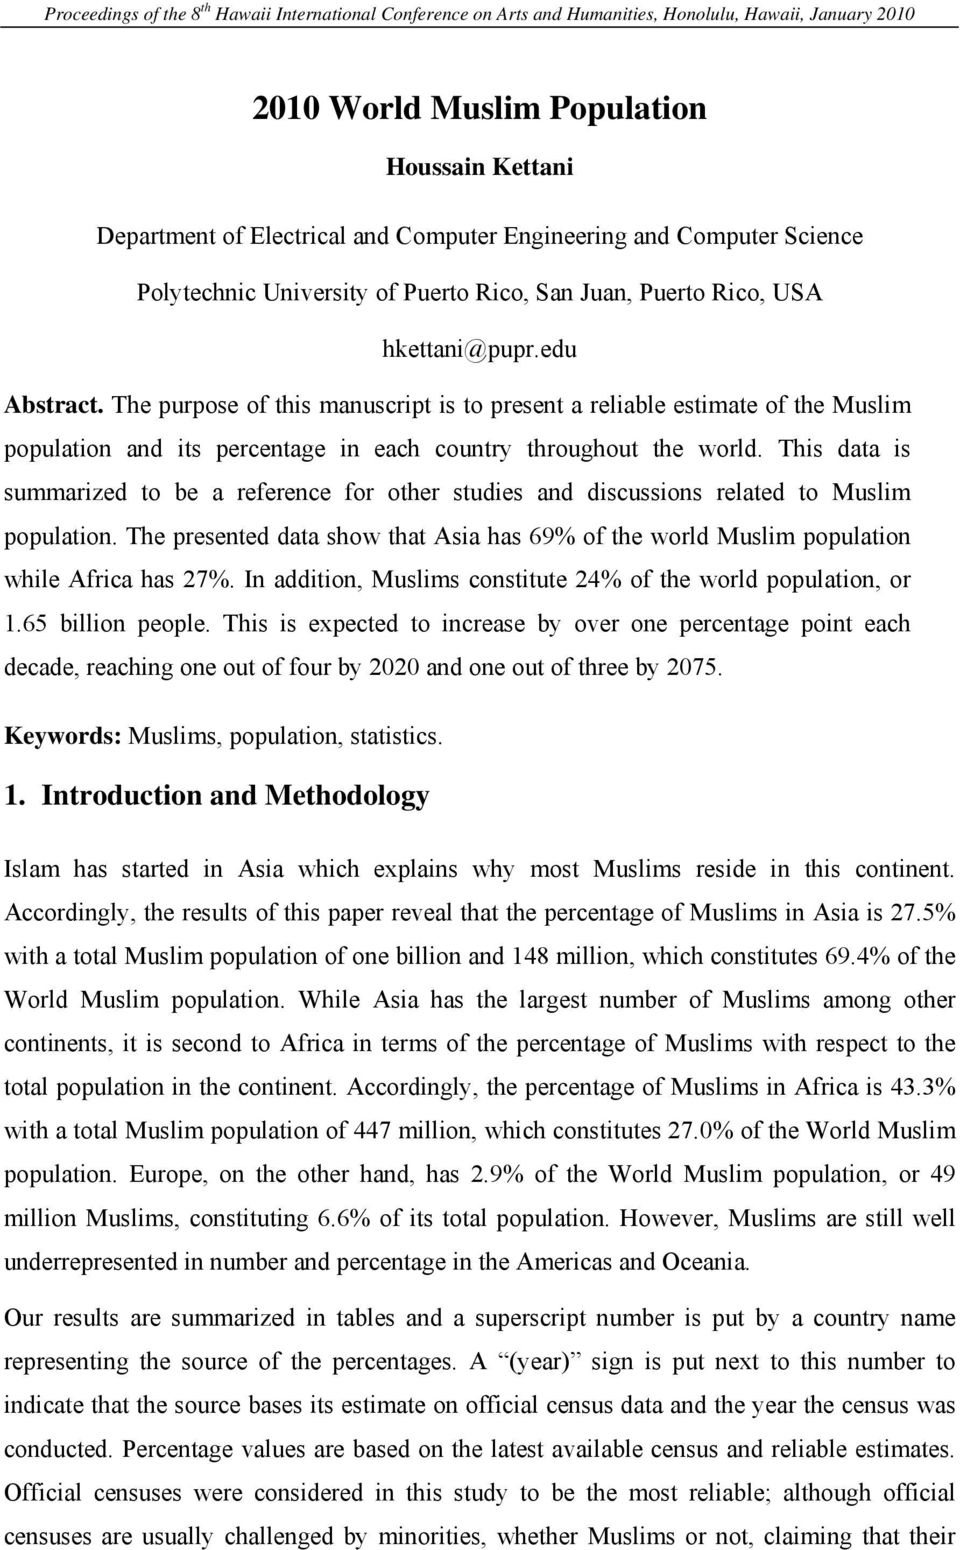 This data is summarized to be a reference for other studies and discussions related to Muslim population. The presented data show that Asia has 69% of the world Muslim population while Africa has 27%.